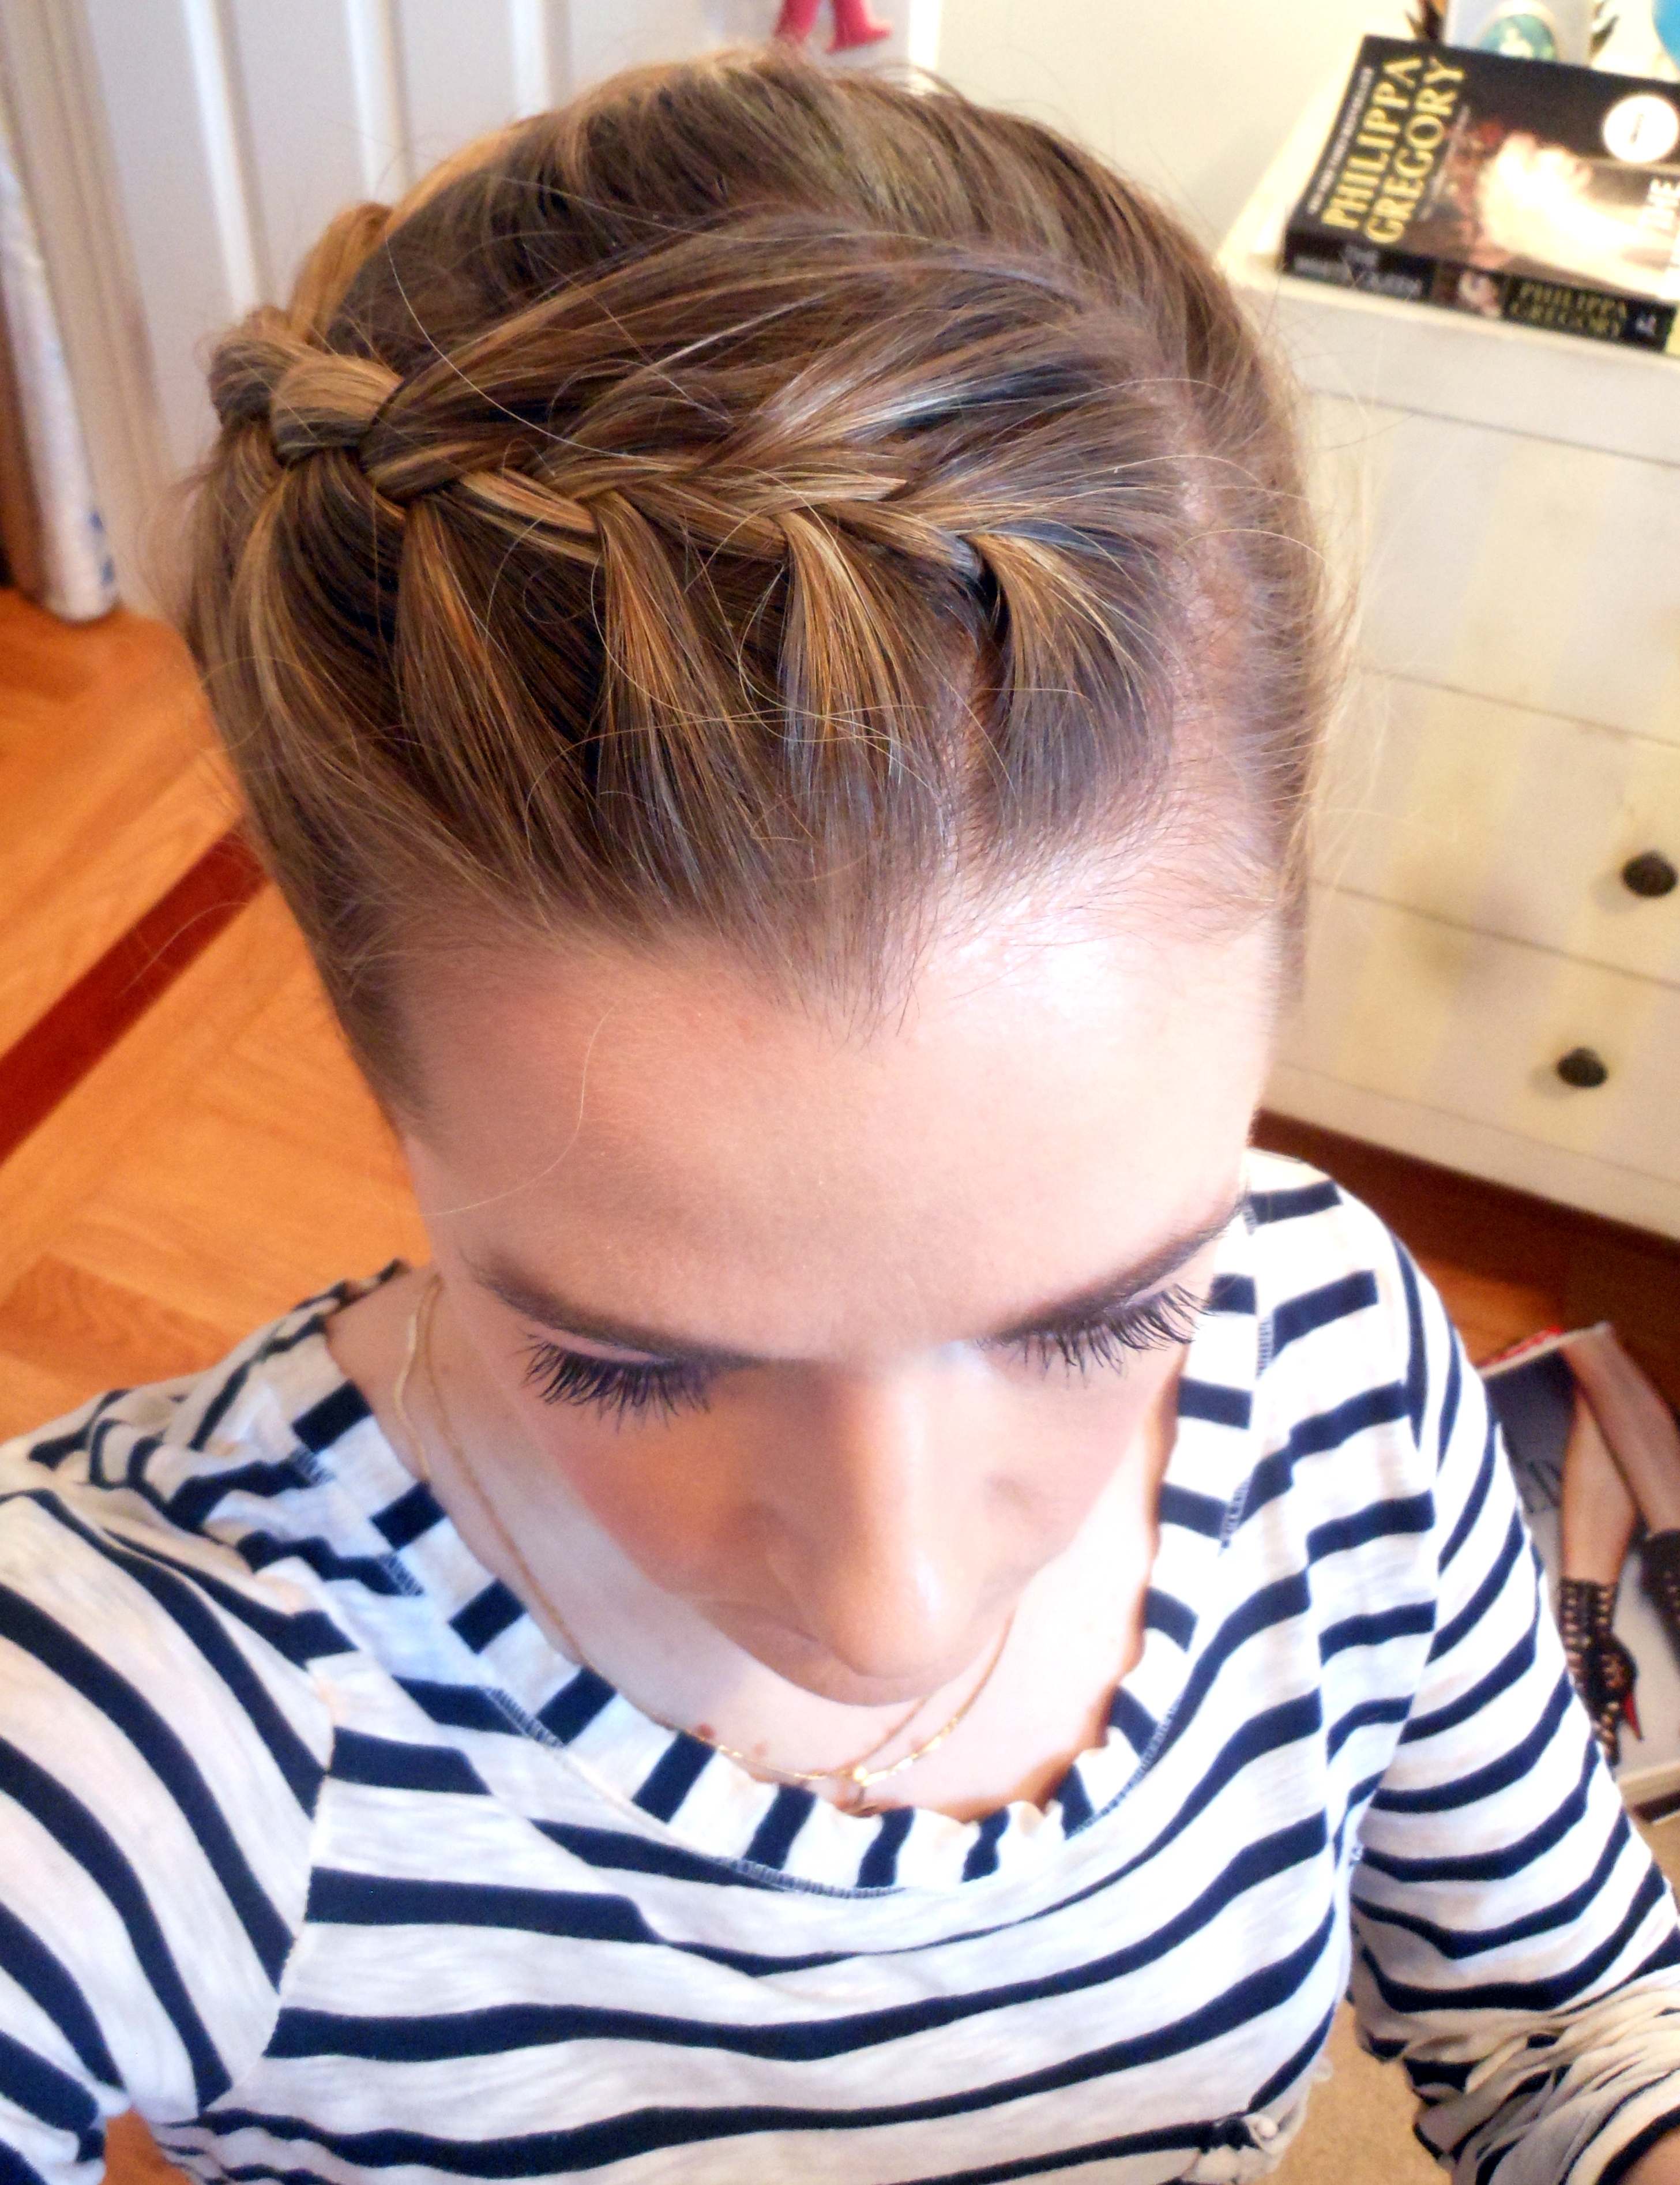 HD wallpapers hairstyles you can do with a ponytail